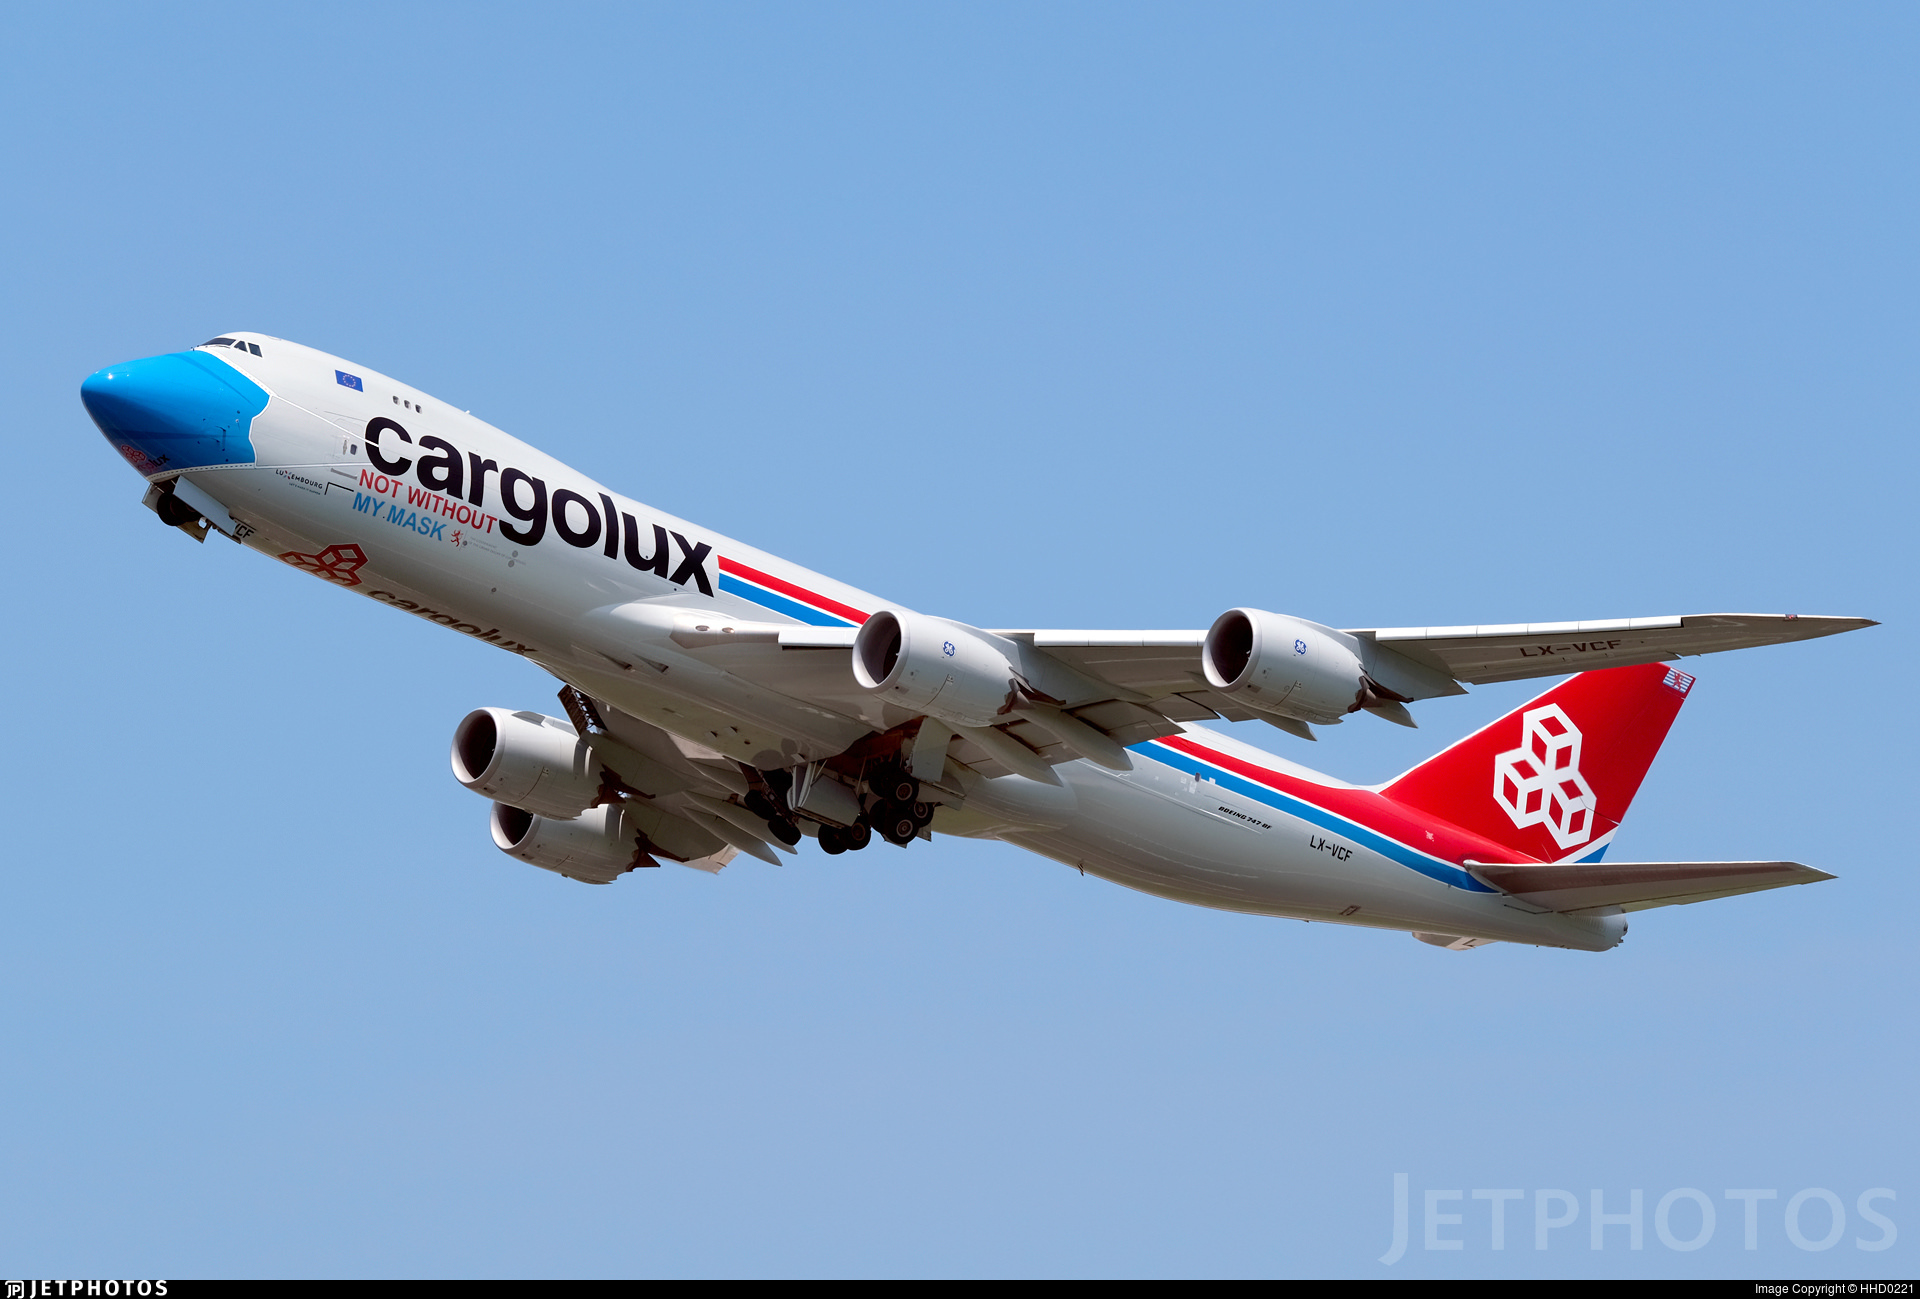 Cargolux 747 in special mask livery